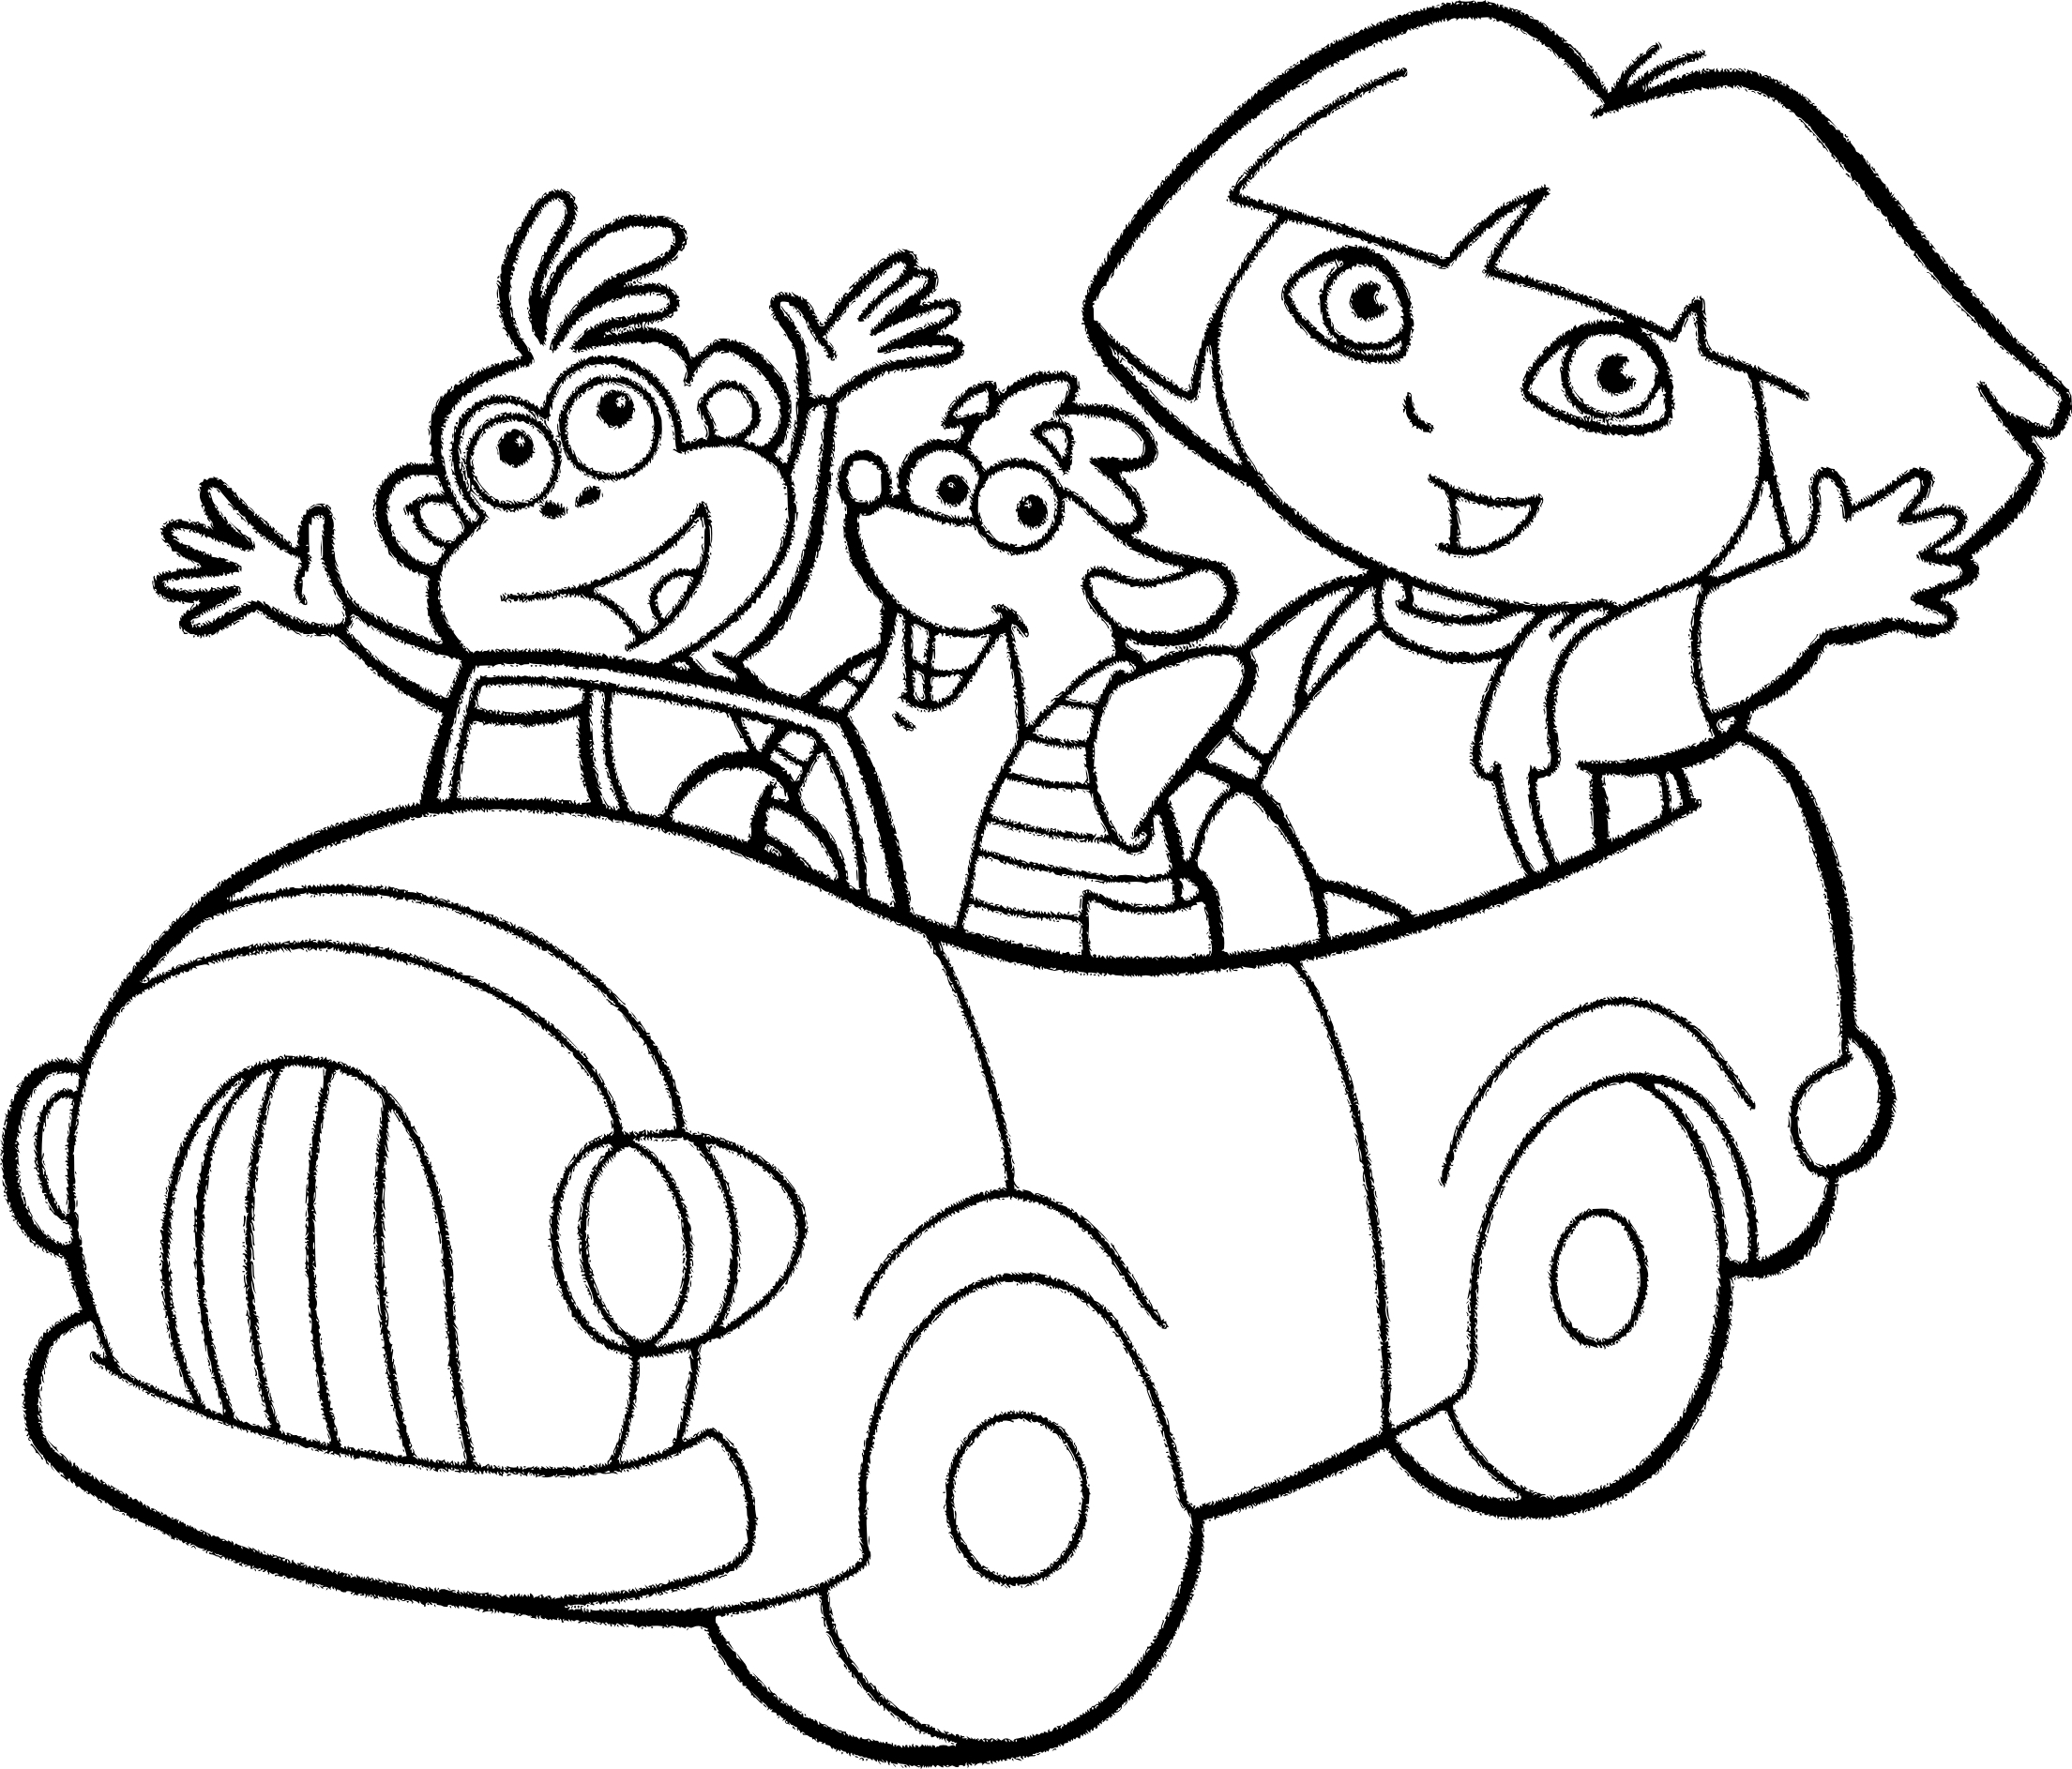 mermaid coloring pages - coloriage dora lexploratrice en voiture